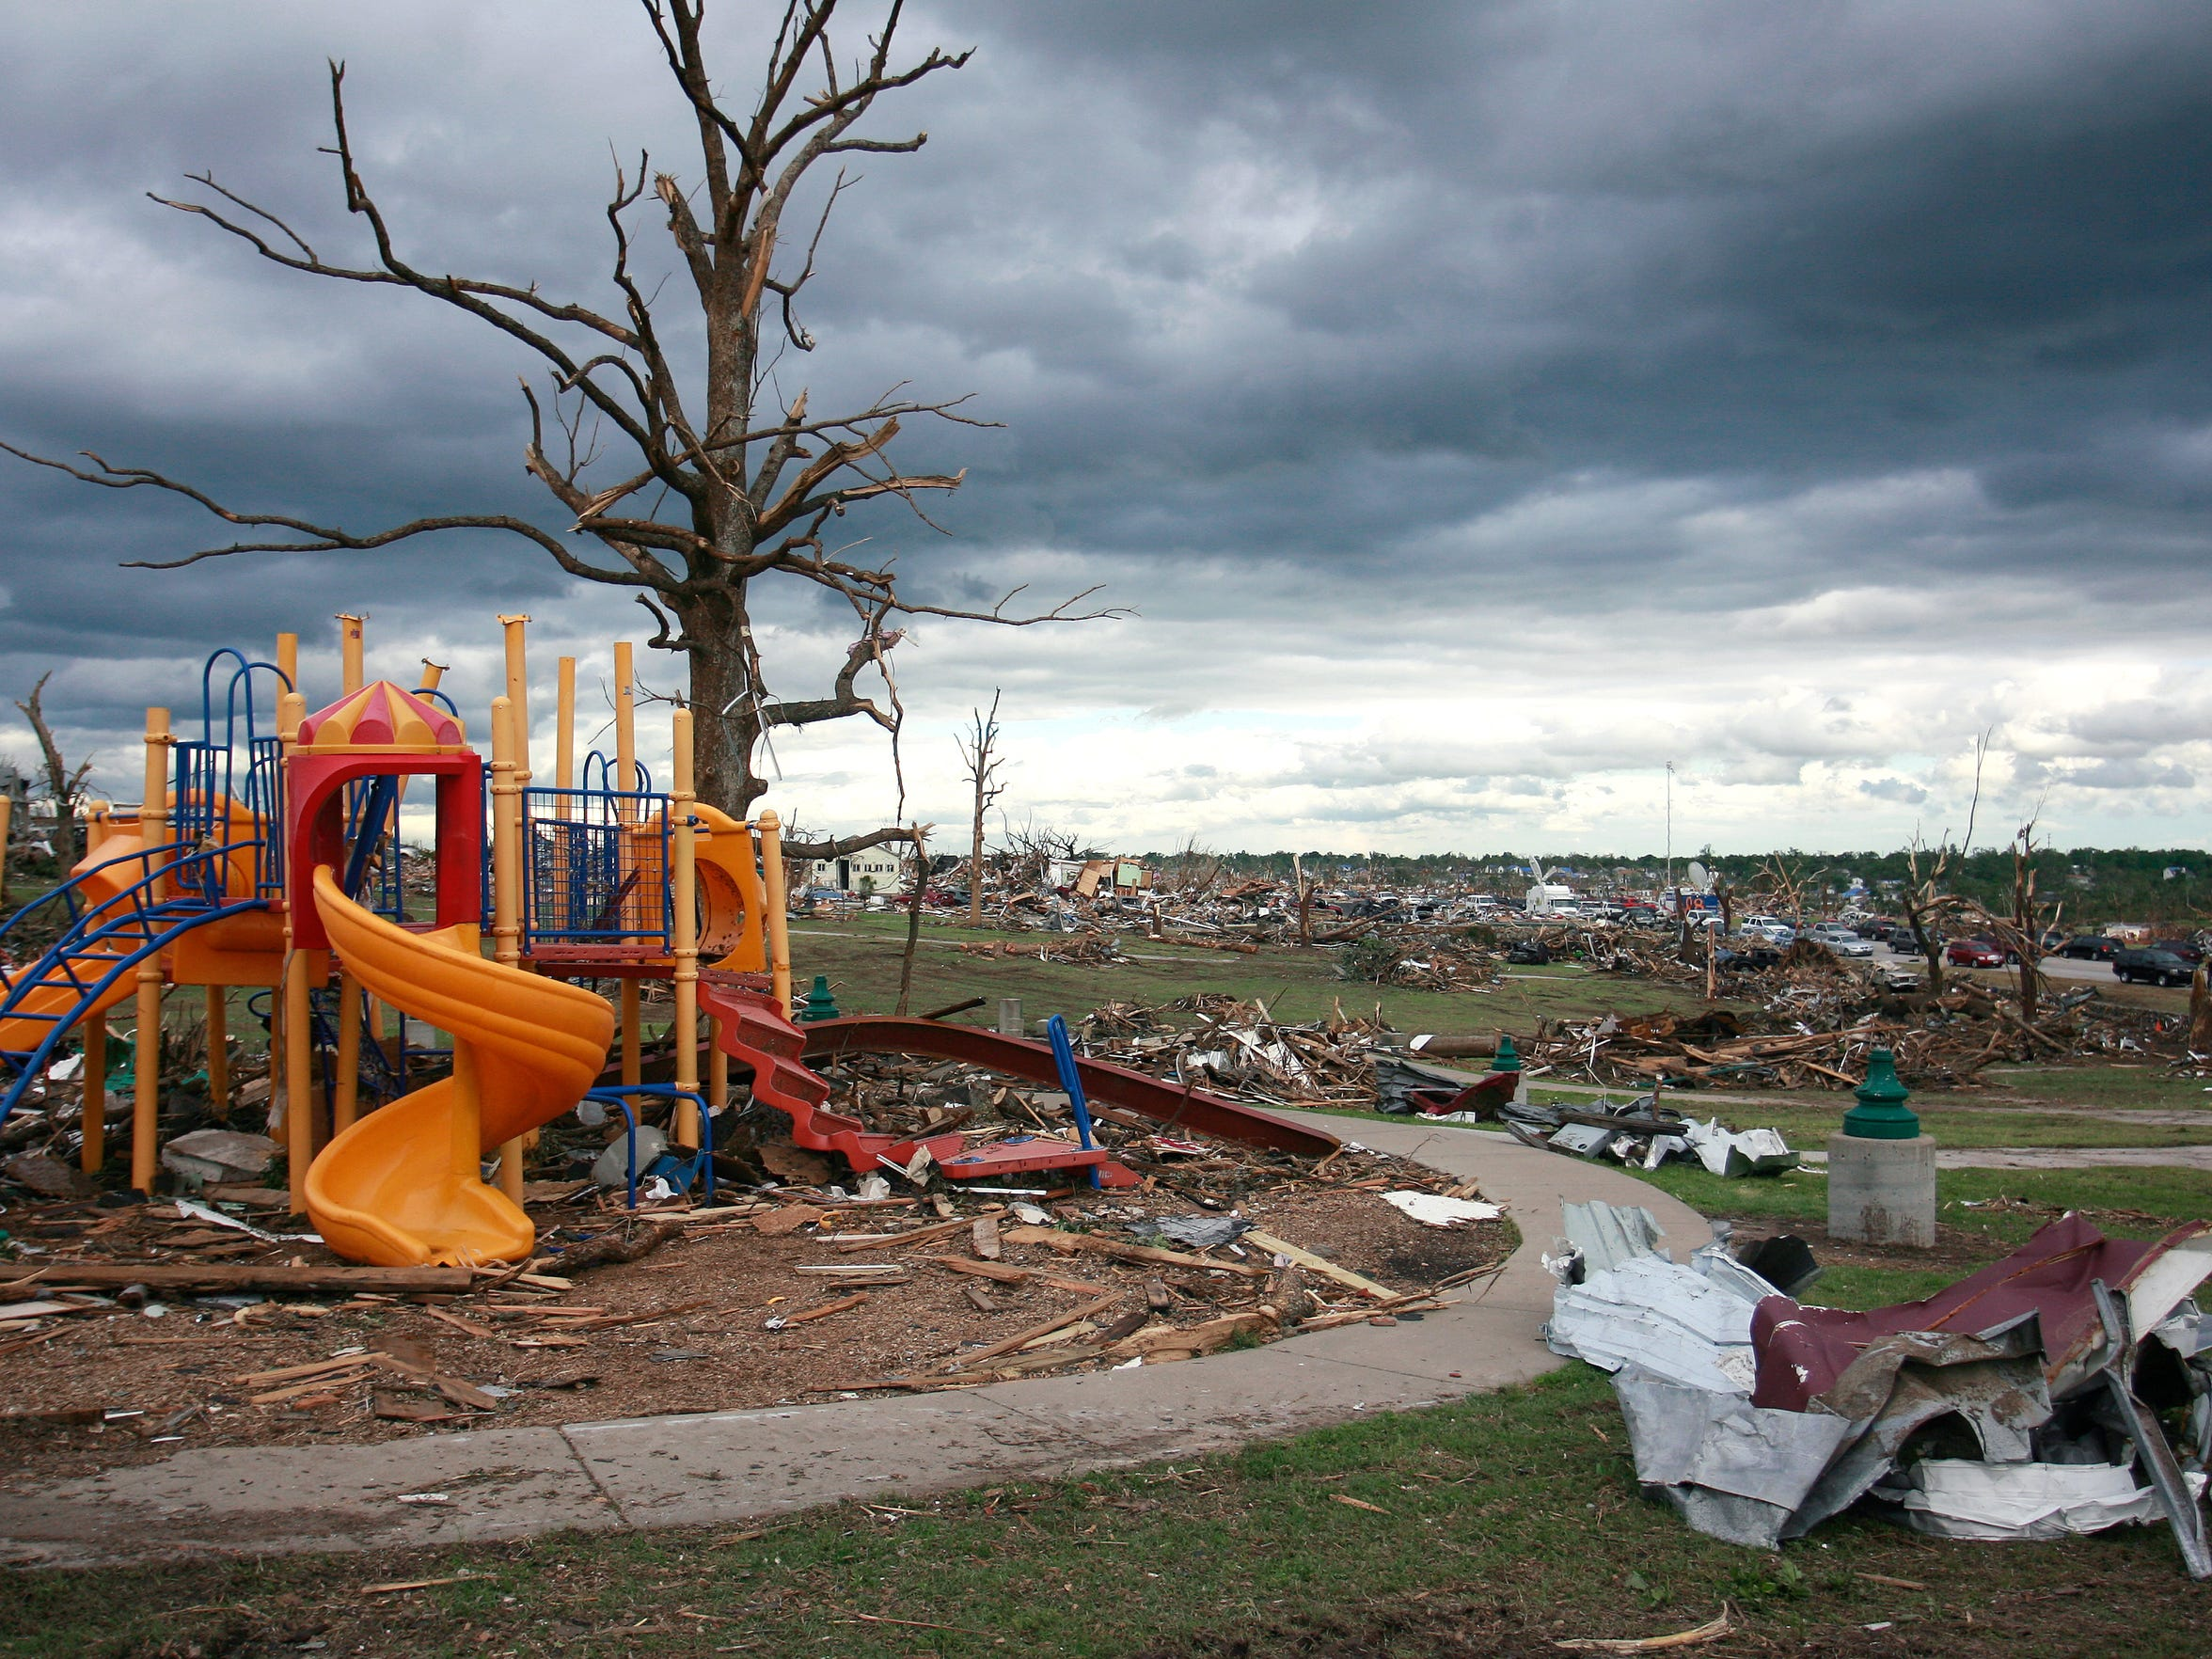 A park lies in ruins after a EF-5 tornado hit it on Sunday. Nathan Papes/News-Leader